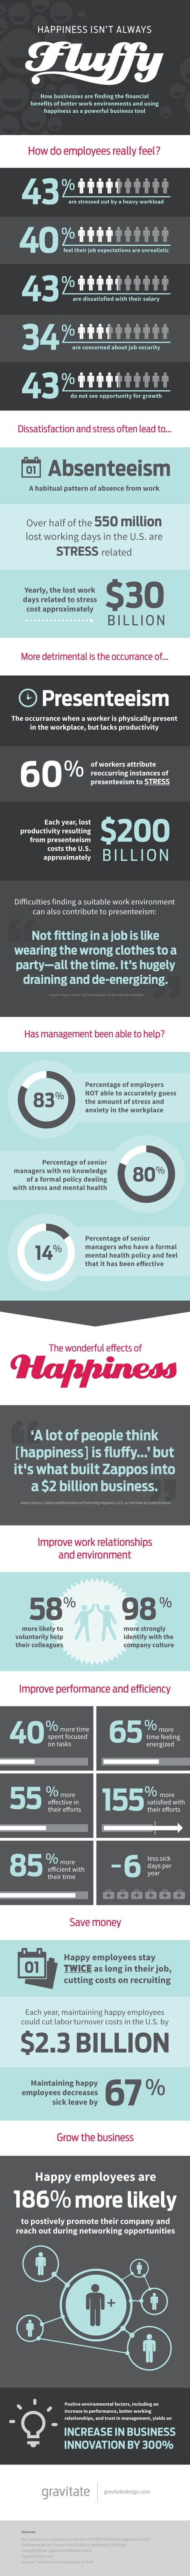 How Much Does an Unhappy Employee Cost? [INFOGRAPHIC] | Is Perfect Employee Performance Possible? | Scoop.it